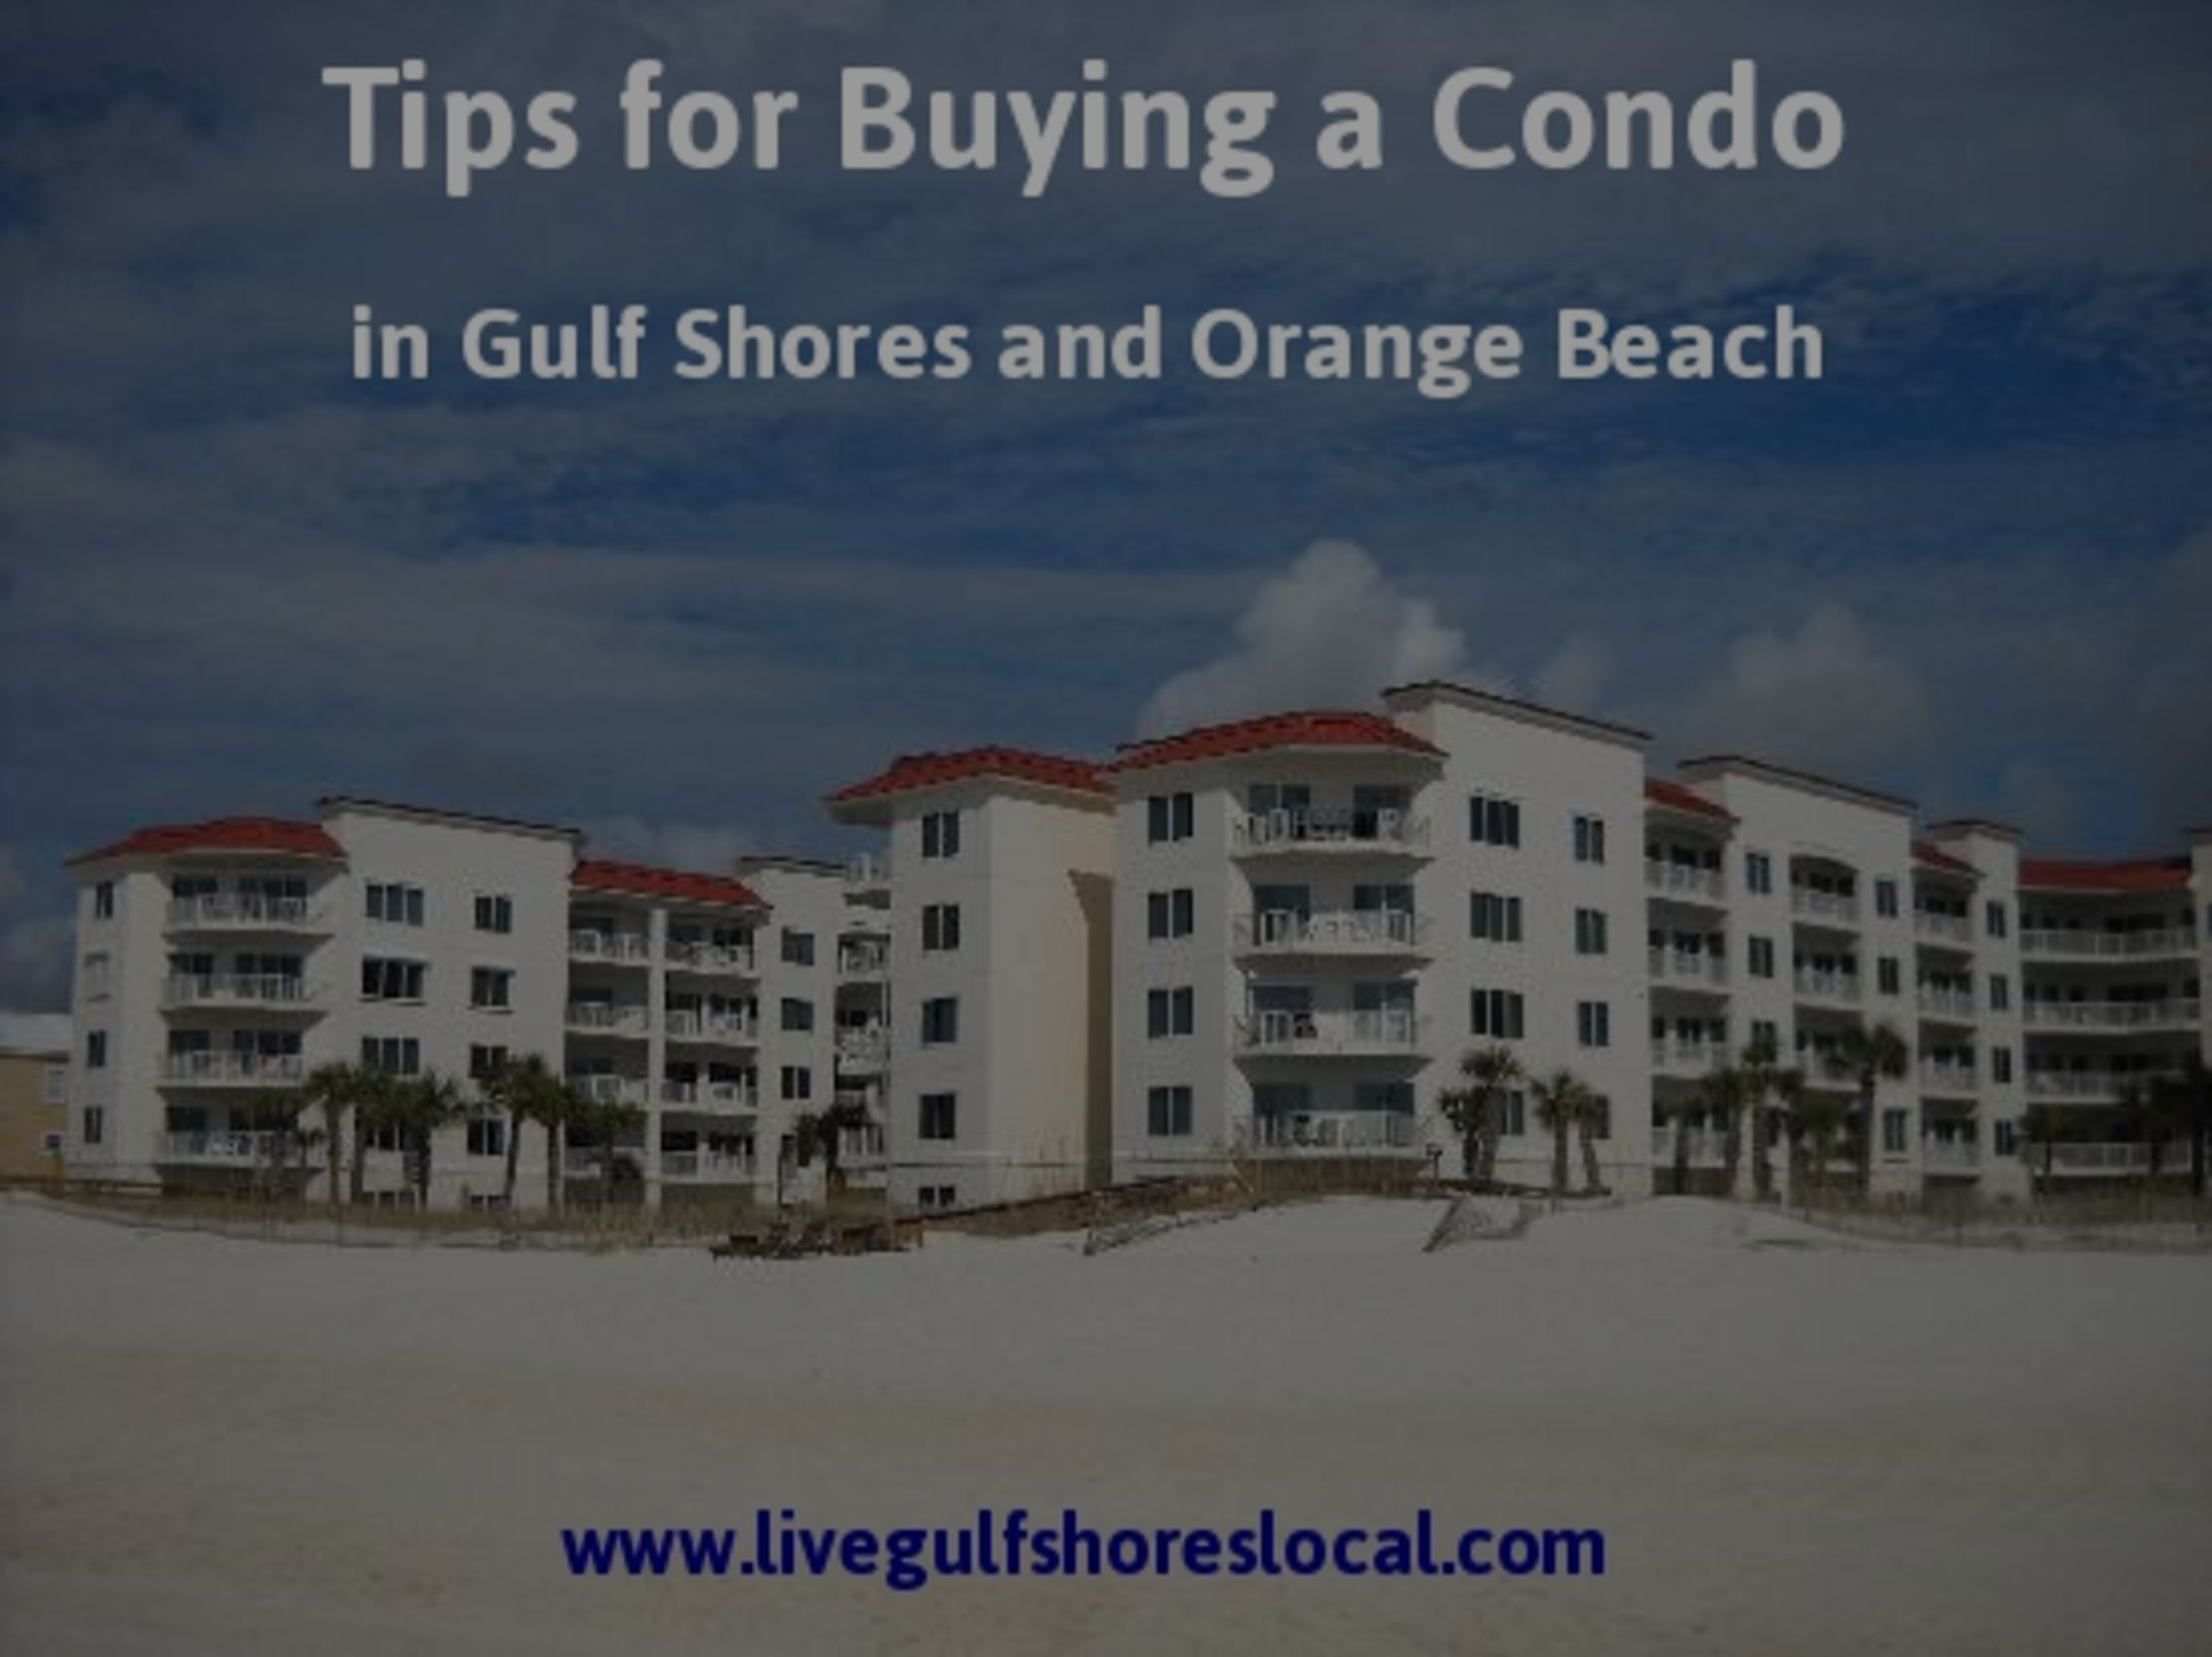 Tips for Buying a Condo in Gulf Shores and Orange Beach